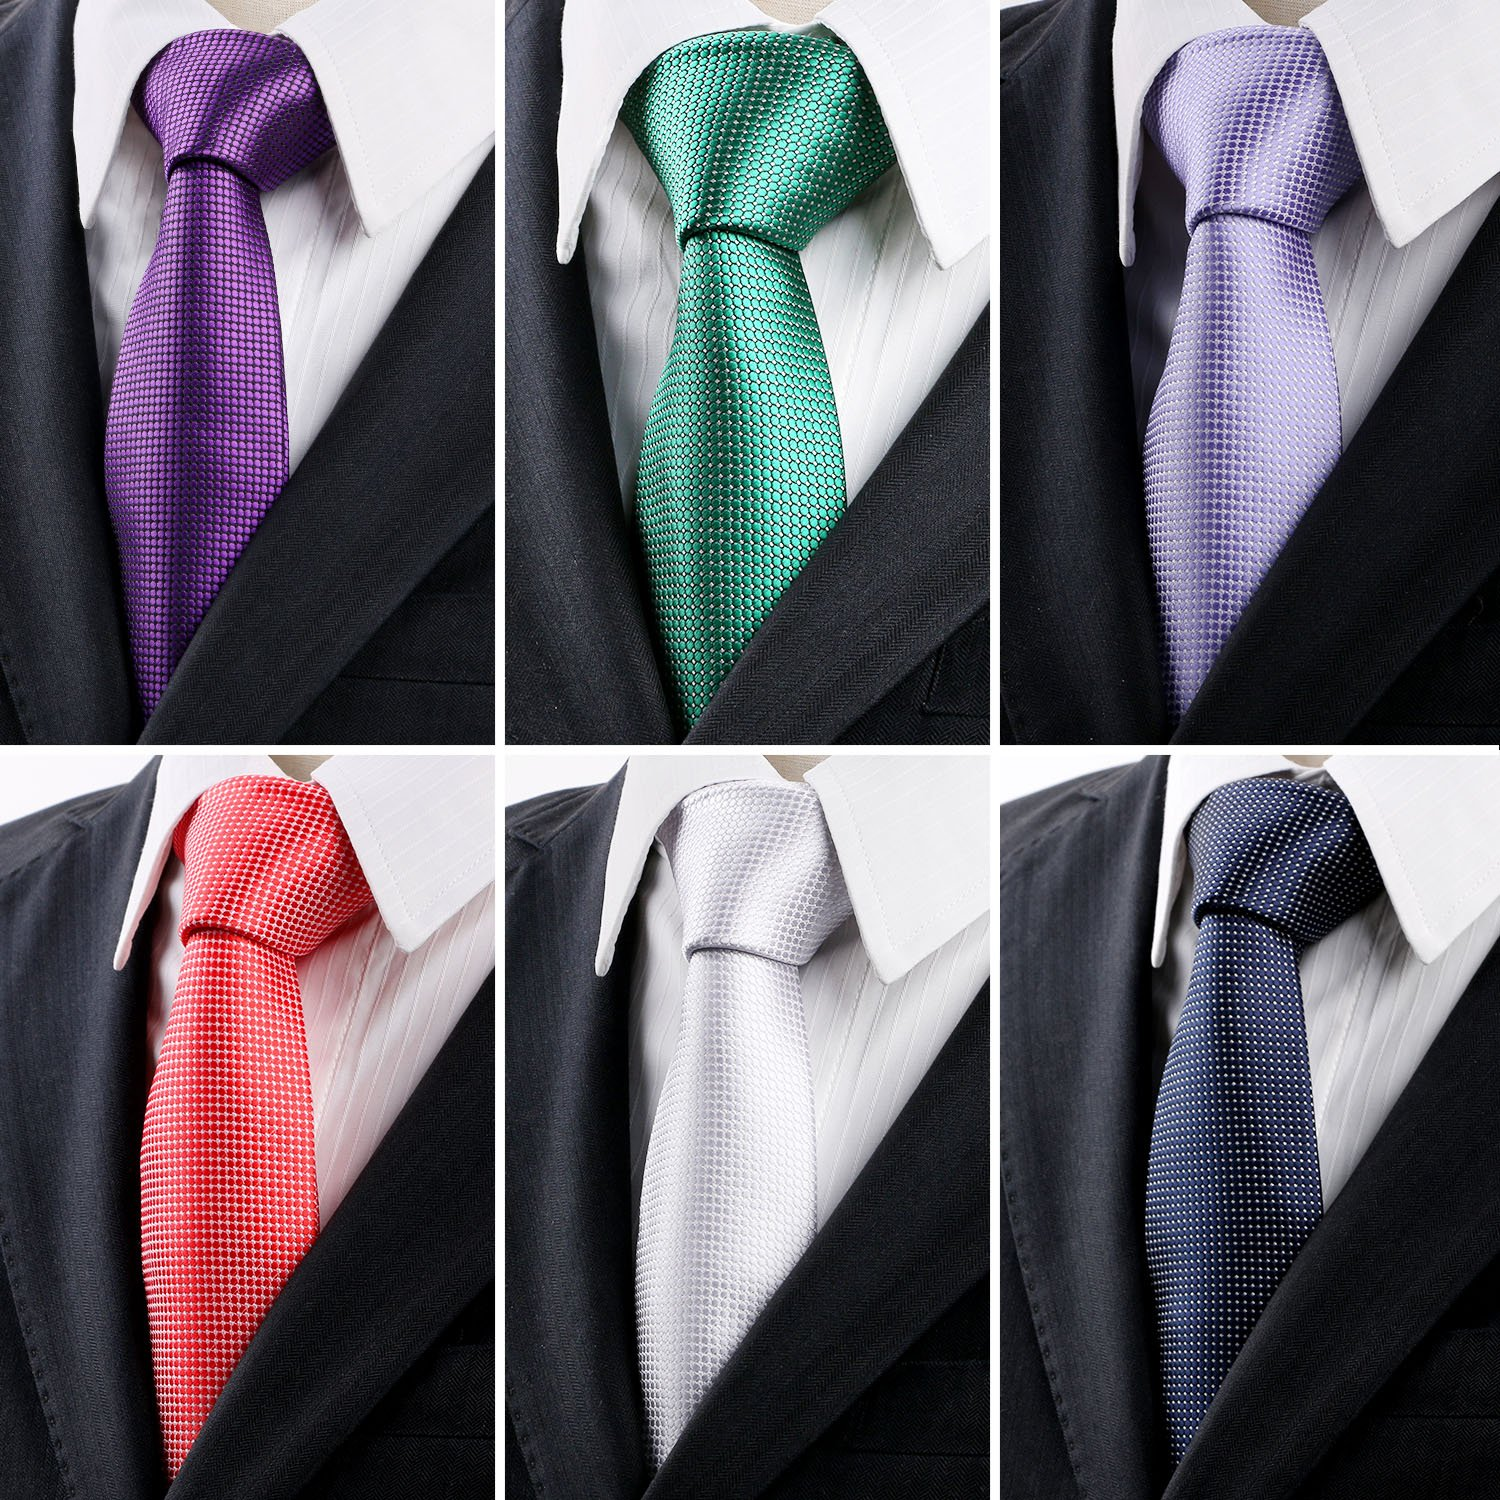 Scott Malone Silk Necktie 6 PCS Classic Men's Woven Jacquard Neck Ties Formal Wedding Business Meeting (Style 1)